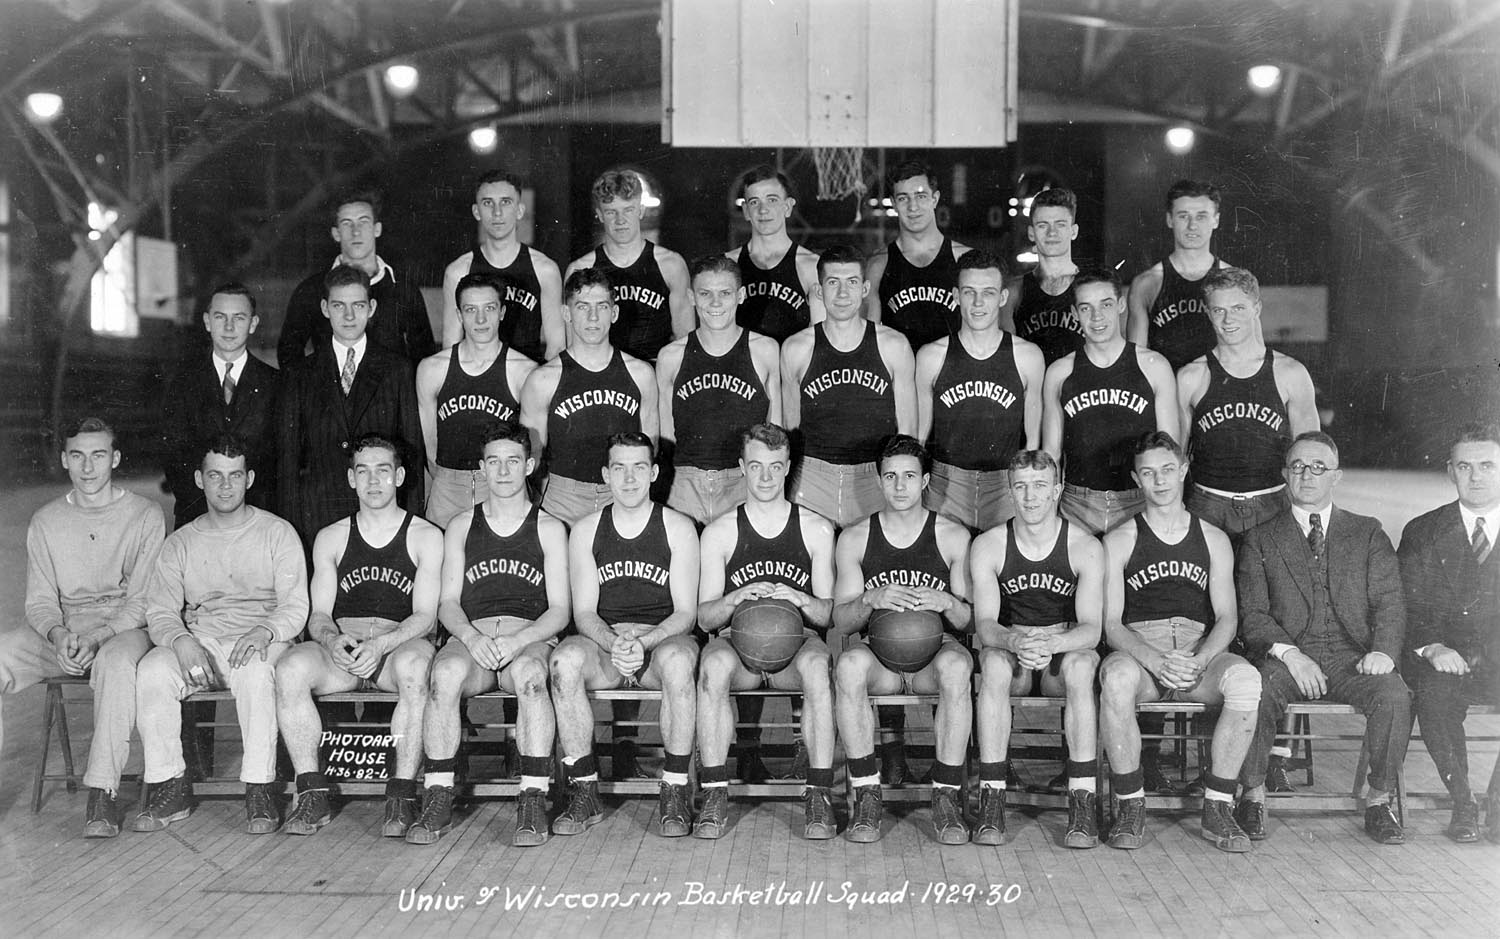 Up to 1930, the Wisconsin basketball team called the Red Gym home. But visiting athletic teams had no interest in calling the Memorial Union, next door, home.